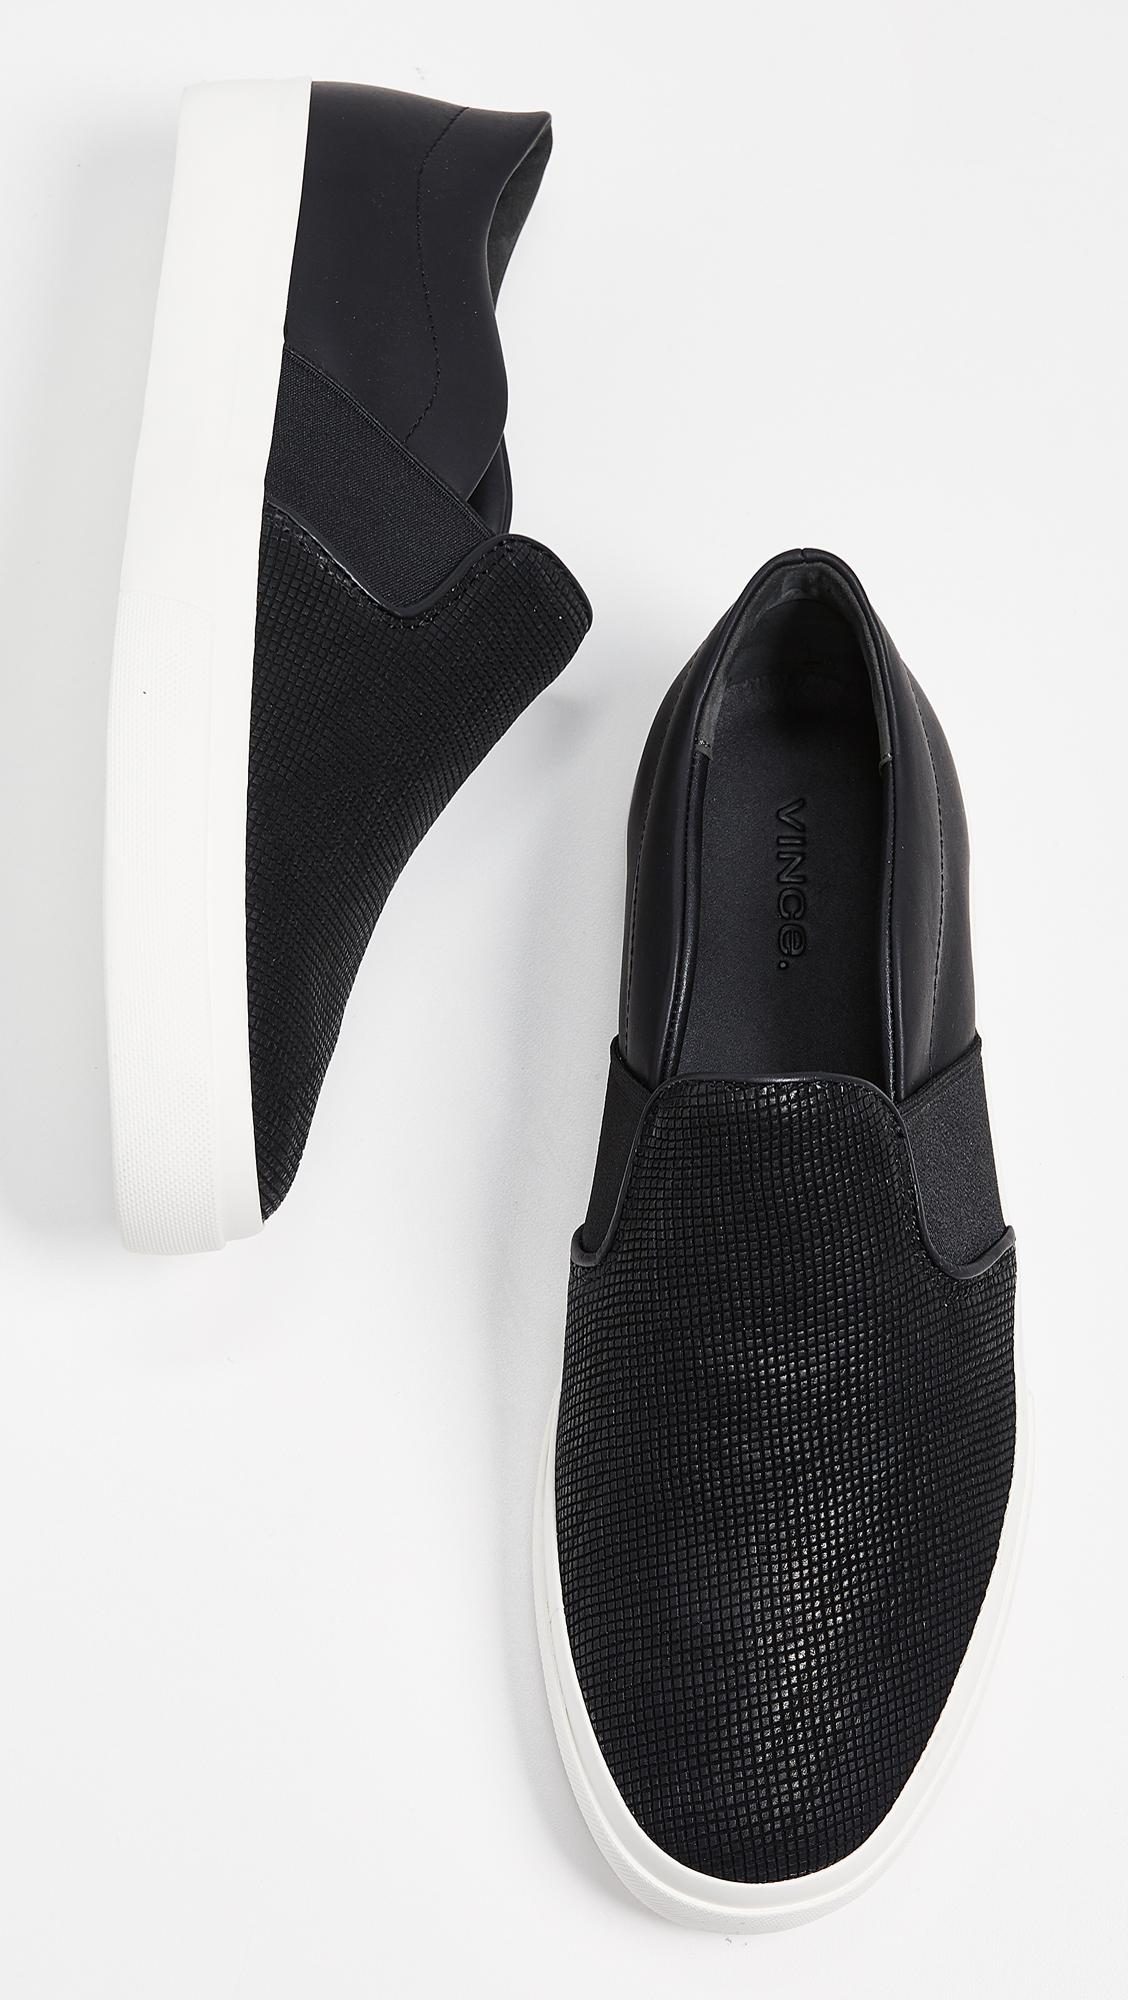 Vince Leather Fenton Sneakers in Black